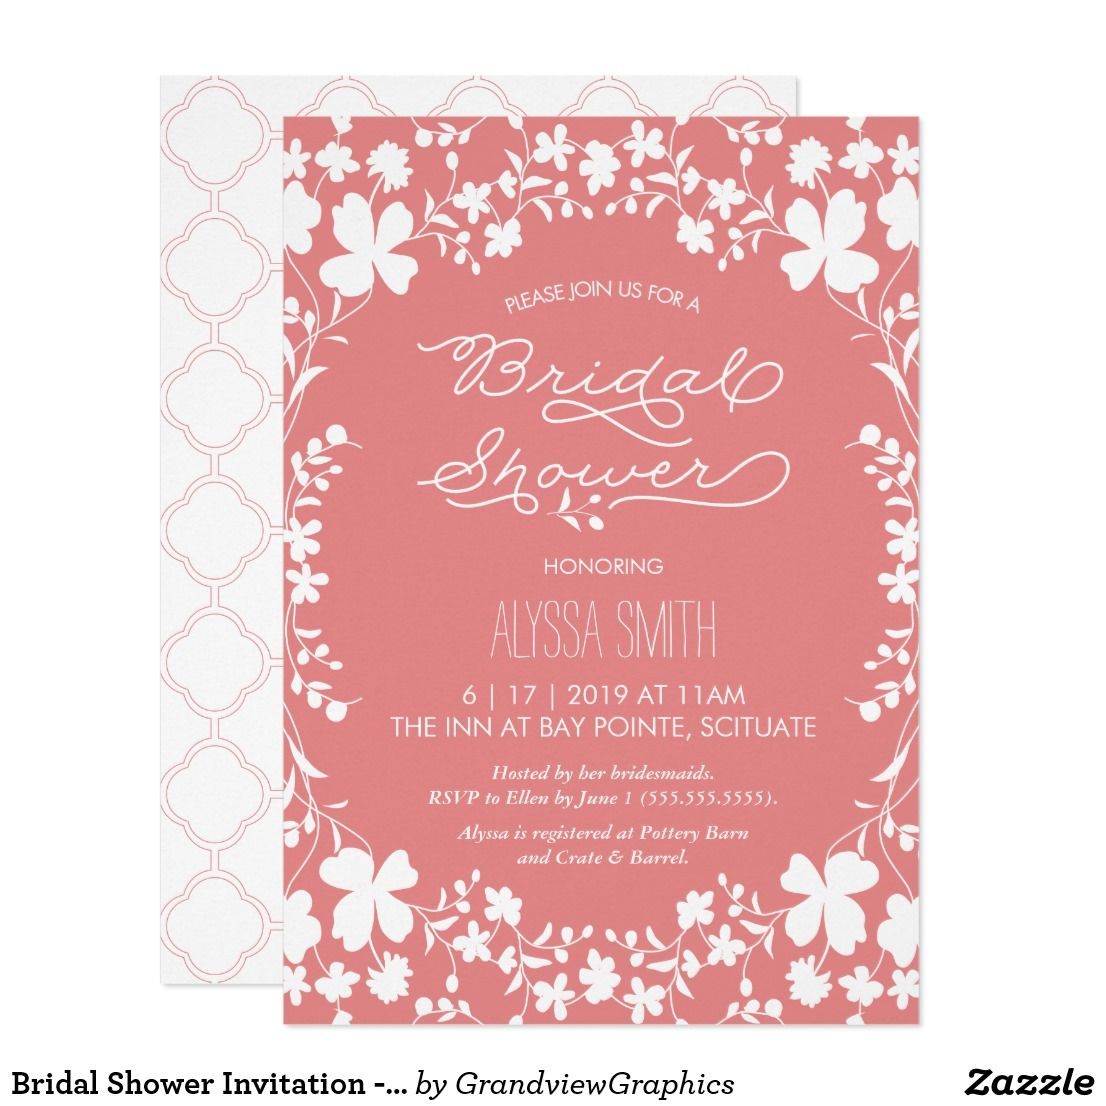 Bridal shower invitation vintage floral clover this elegant bridal shower invitation vintage floral clover this elegant vintage style bridal shower invitation features an illustration of white flowers and clover filmwisefo